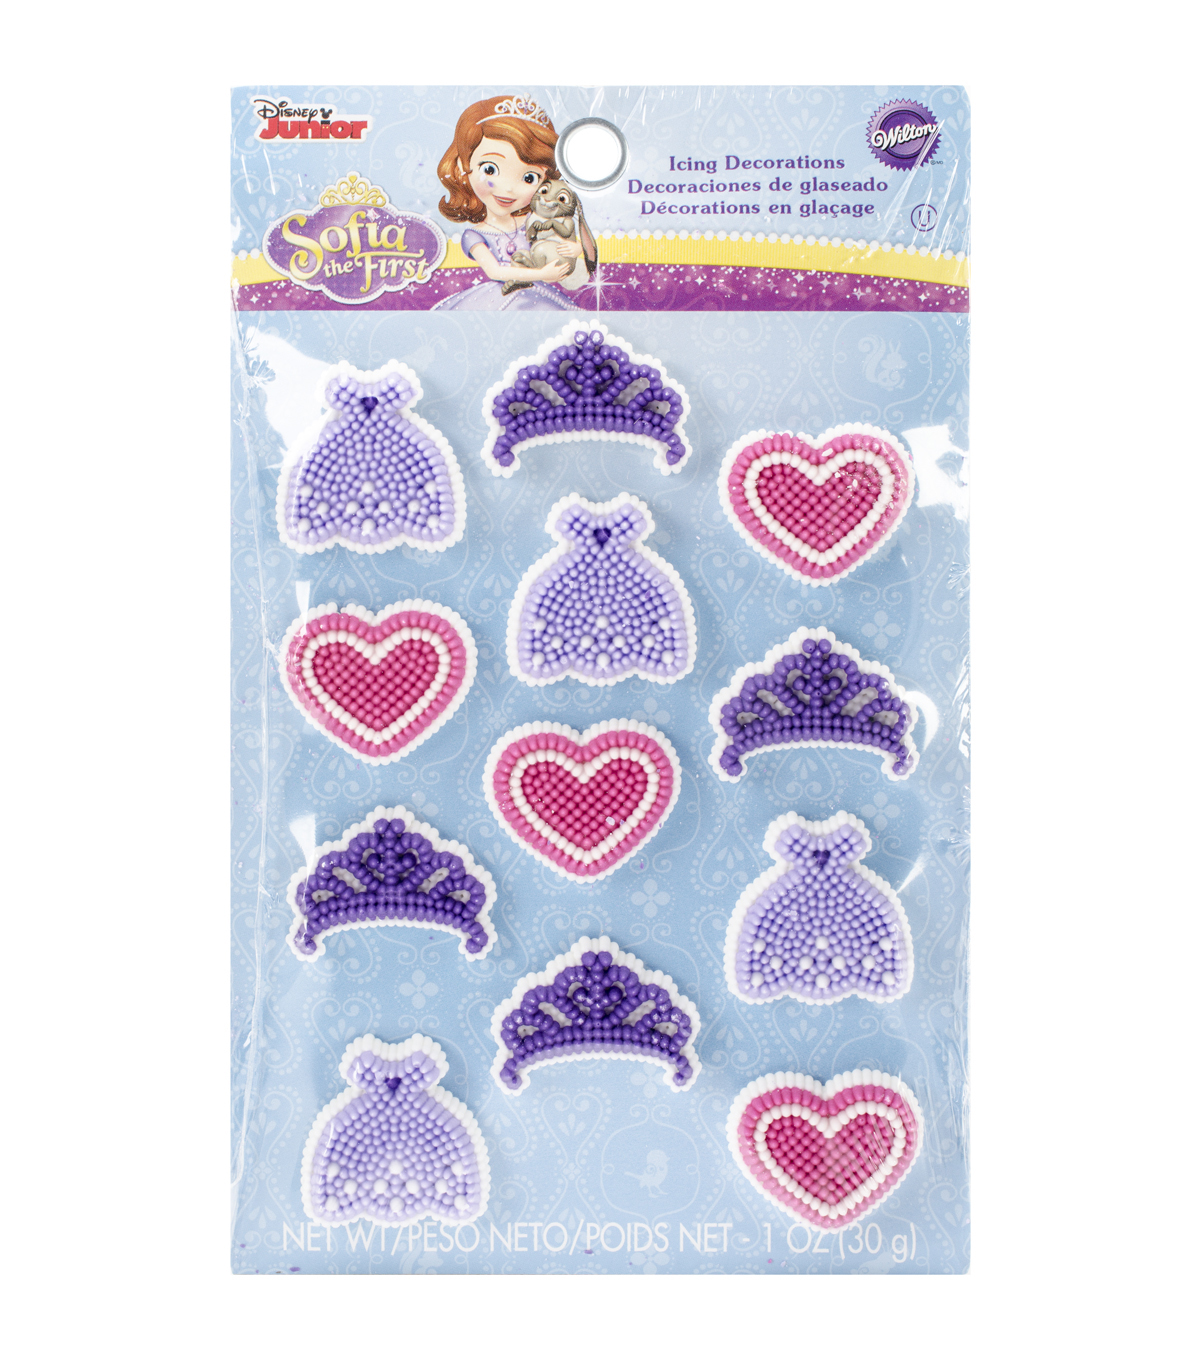 Wilton® Royal Icing Decorations 12/Pkg-Sofia The First